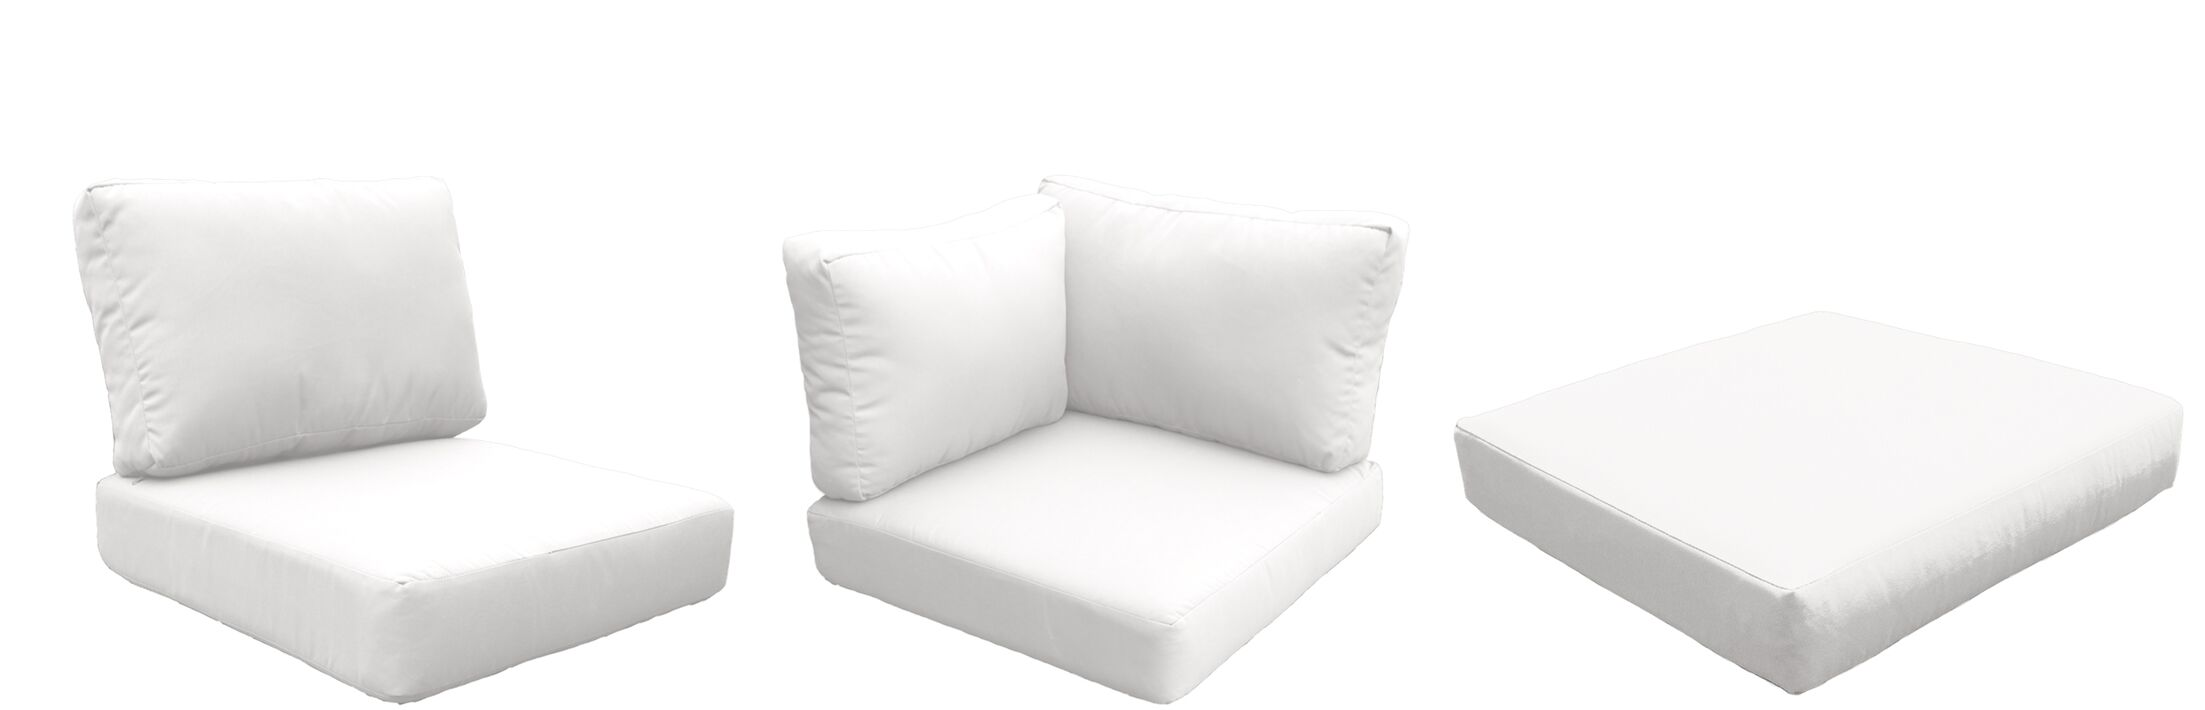 Fairmont Outdoor 23 Piece Lounge Chair Cushion Set Fabric: White